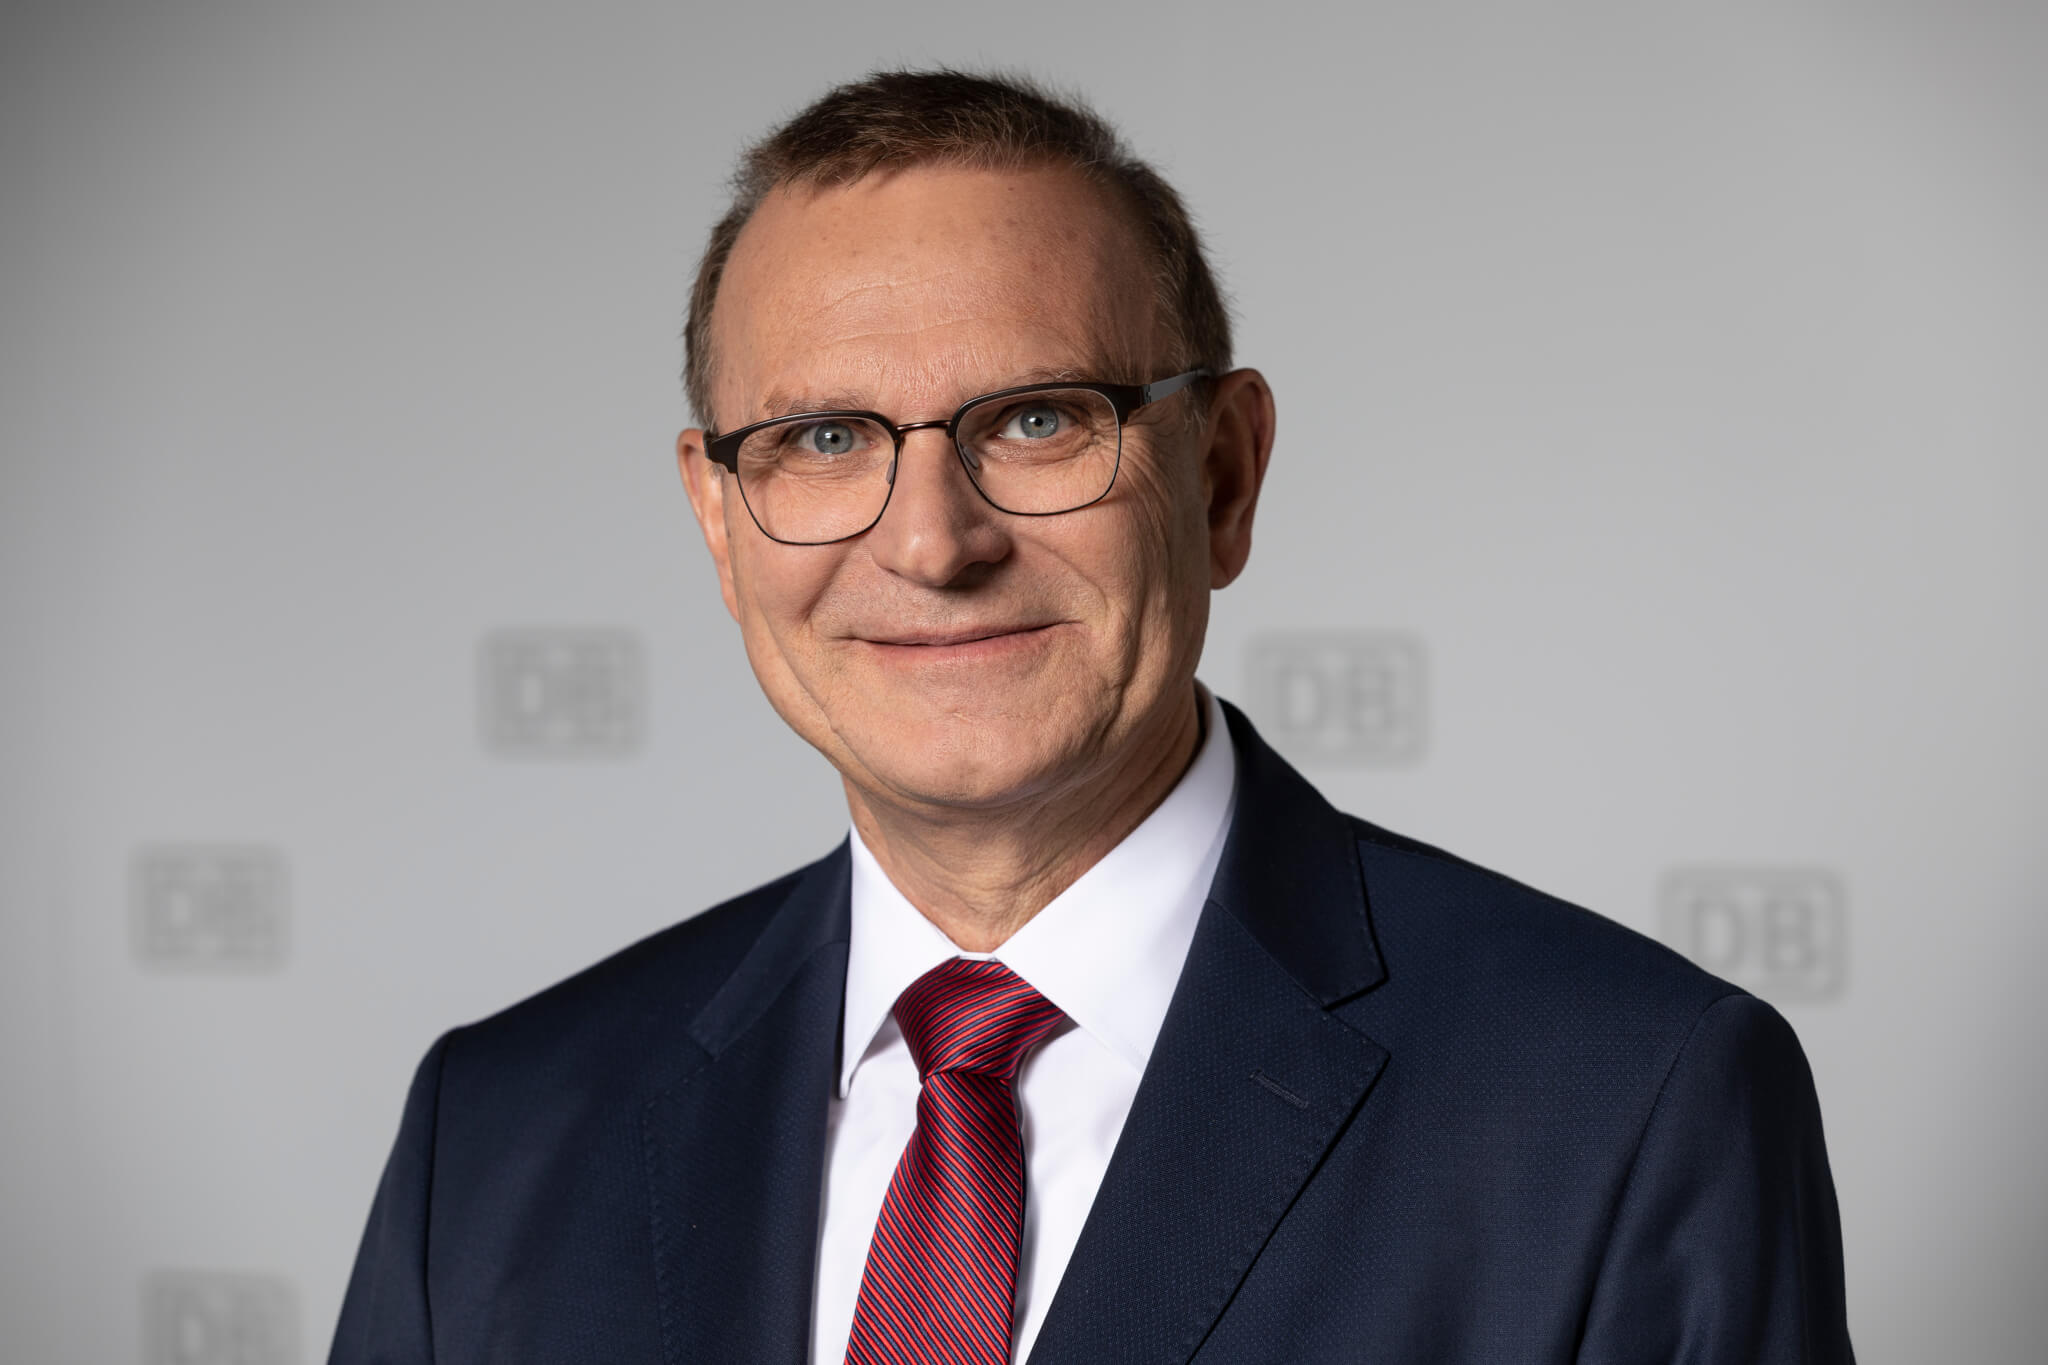 Michael Odenwald elected on to DB Supervisory Board